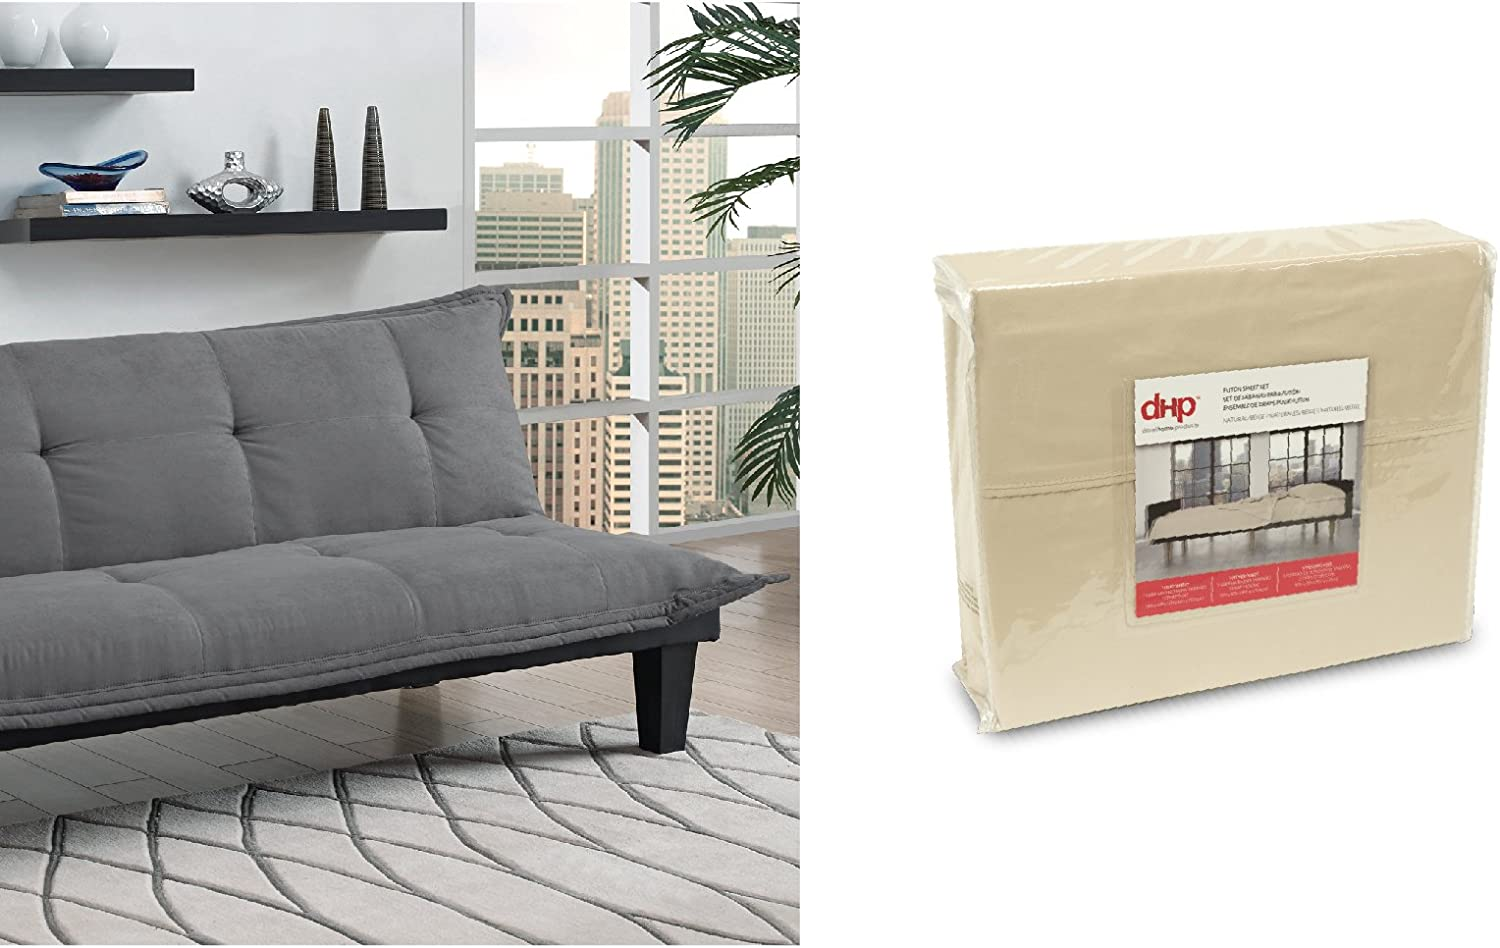 DHP Lodge Convertible Futon Couch Bed, Gray, and Futon Sheet Set, Beige